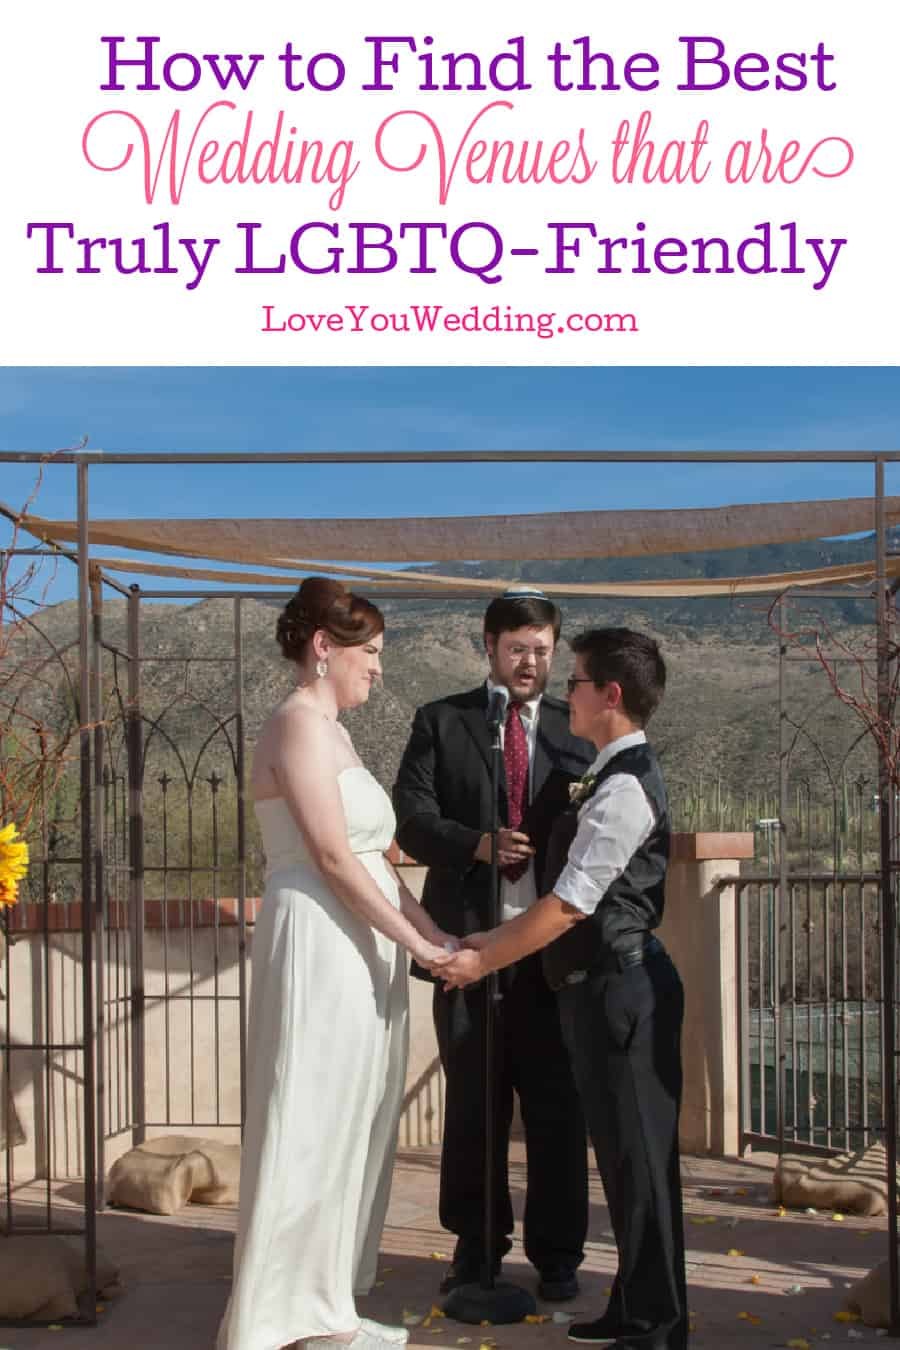 Need to know how to find the best LGBTQ-friendly wedding venues? Take a look at our handy guide with tips and tricks to try!